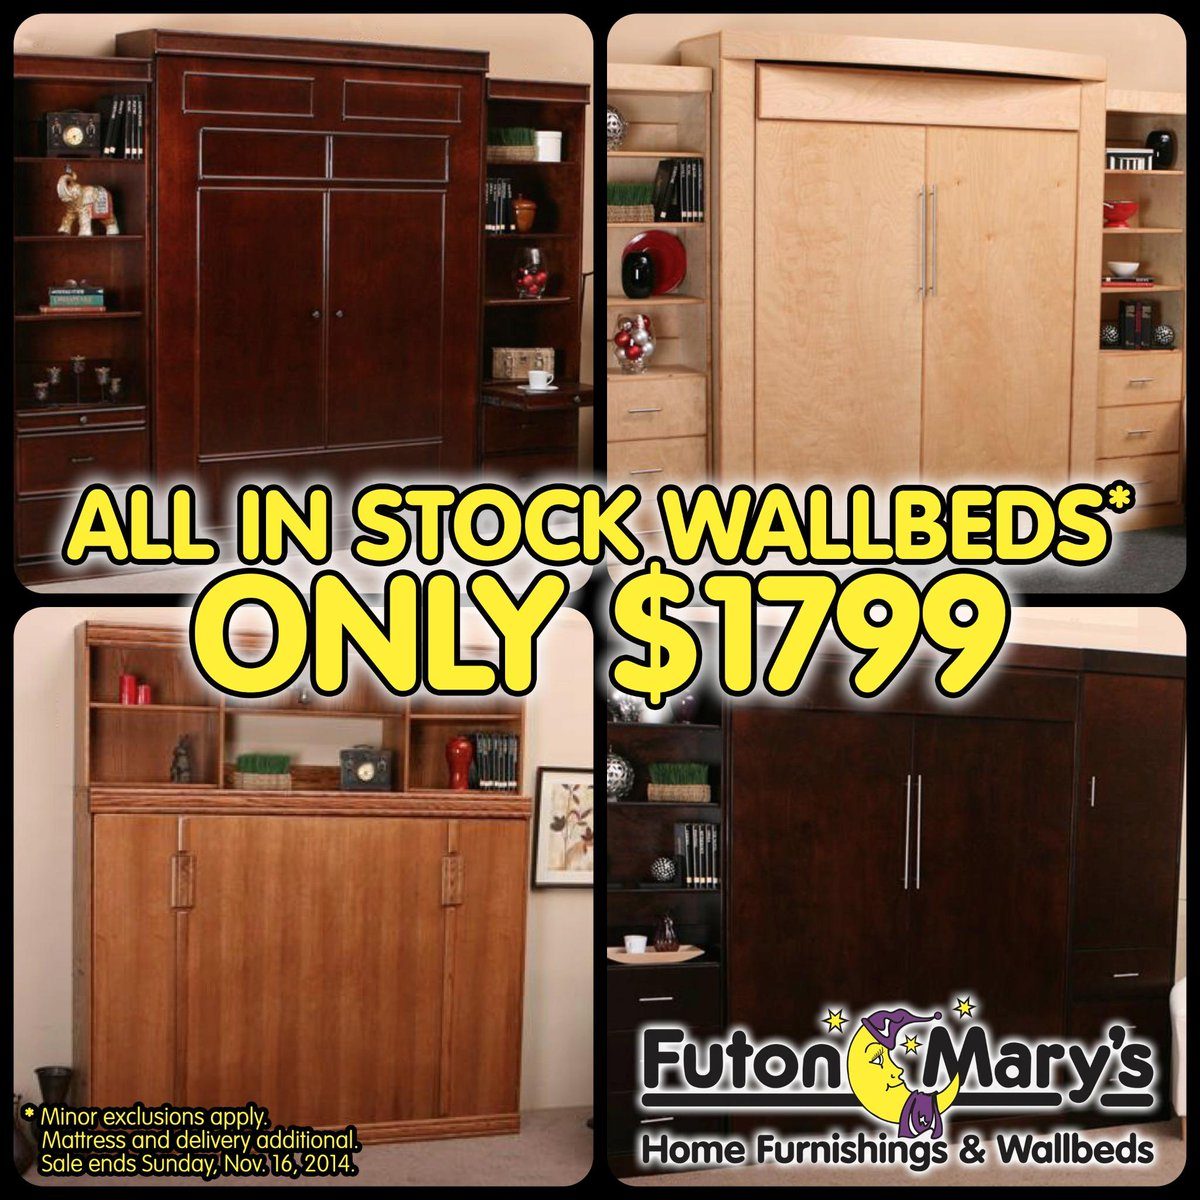 Marys Hide And Sleep On Twitter Mary S Futons Is Having A Wall To Wallbed Clearance Get Details Here Http T Co Xr8rjlwdvg Marin